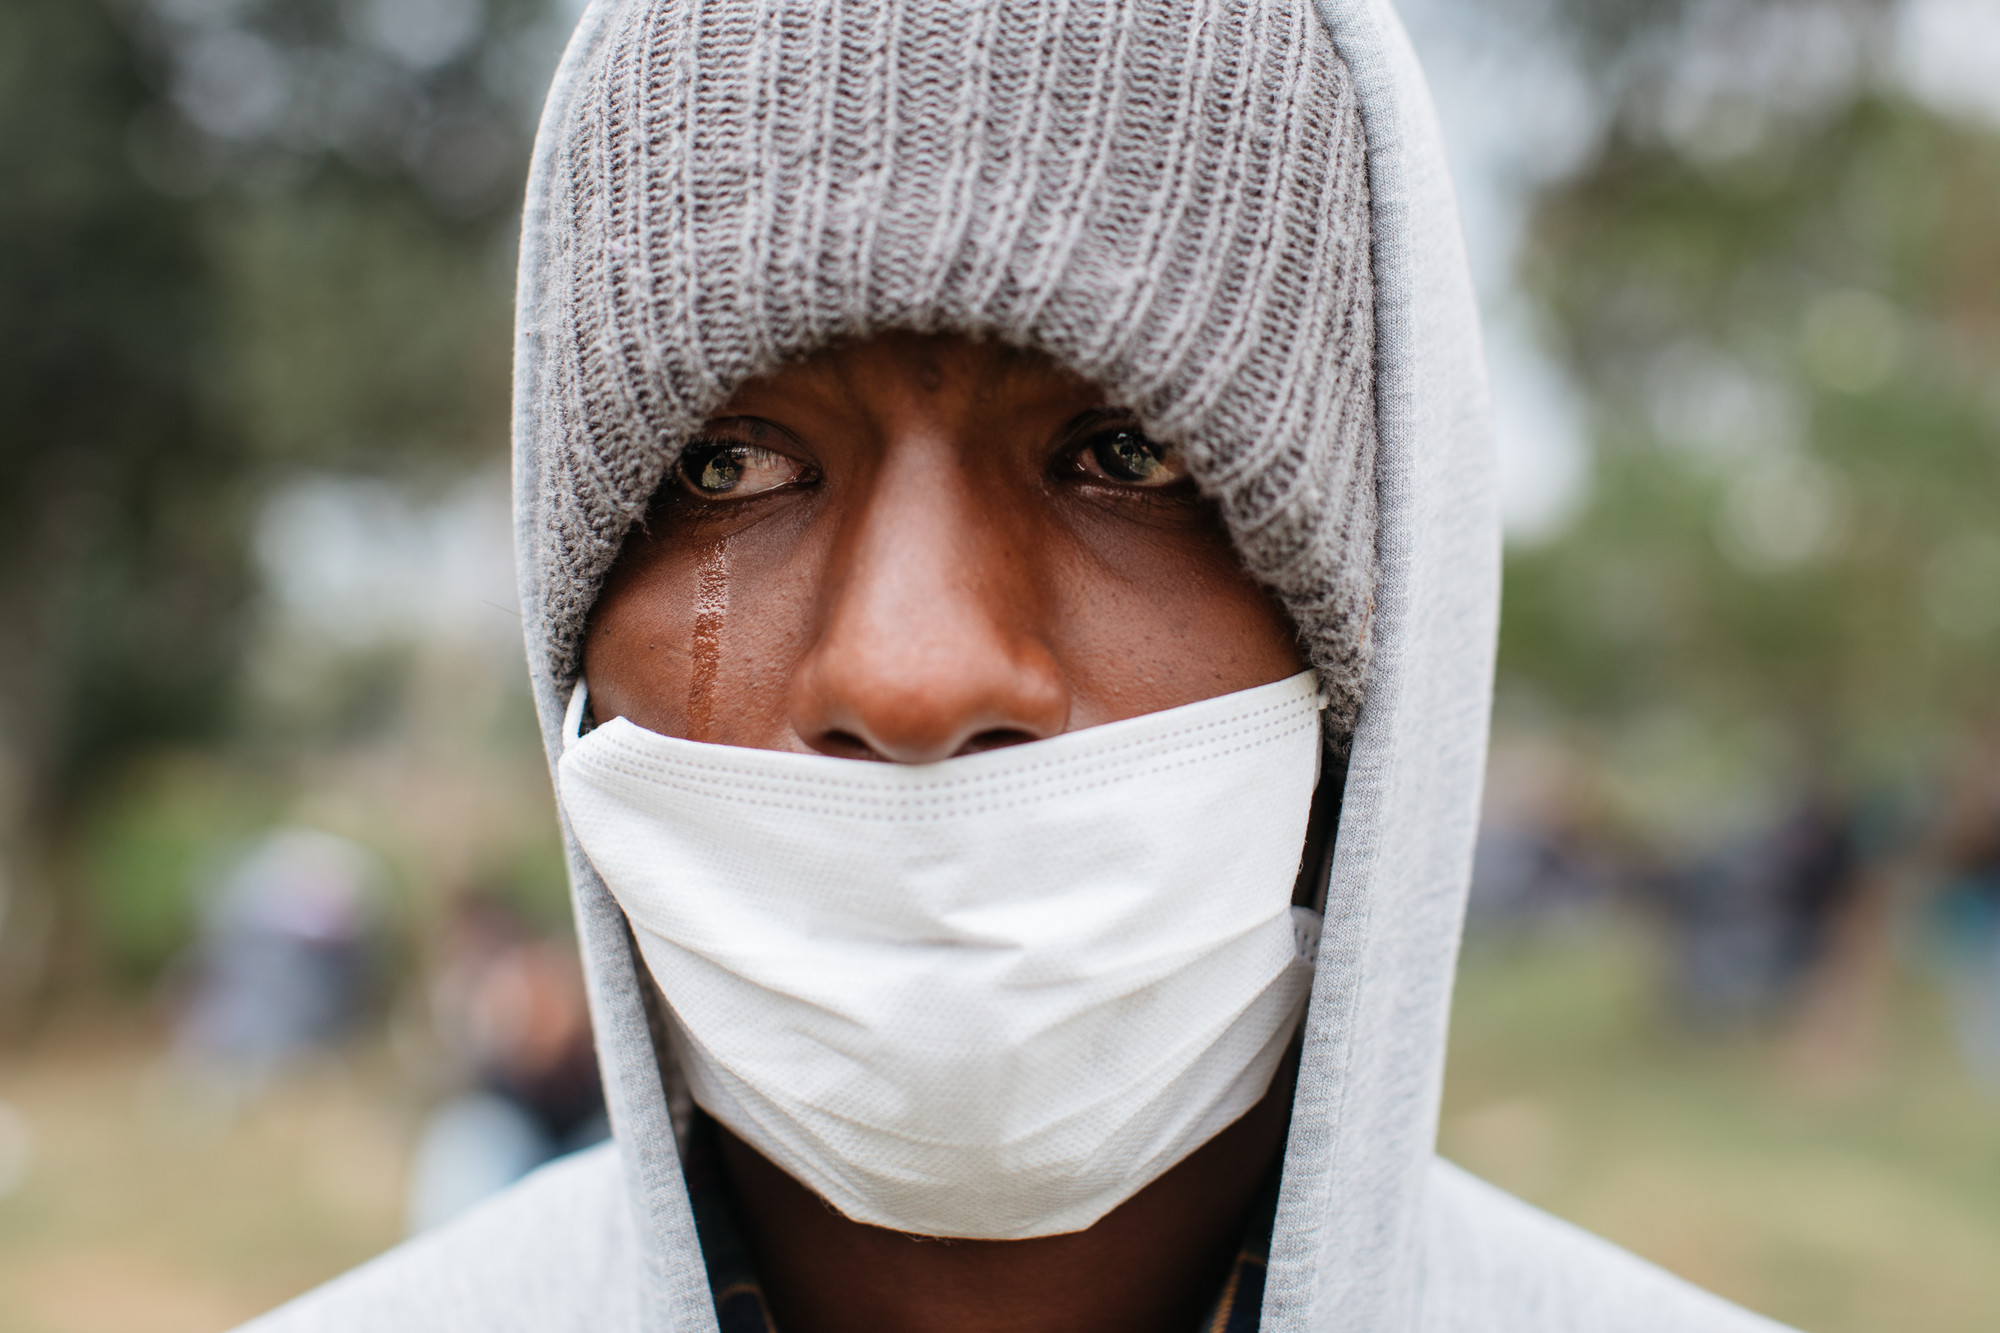 A man with a single tear rolling down his cheek wears a gray stocking hat and a surgical mask over his mouth.